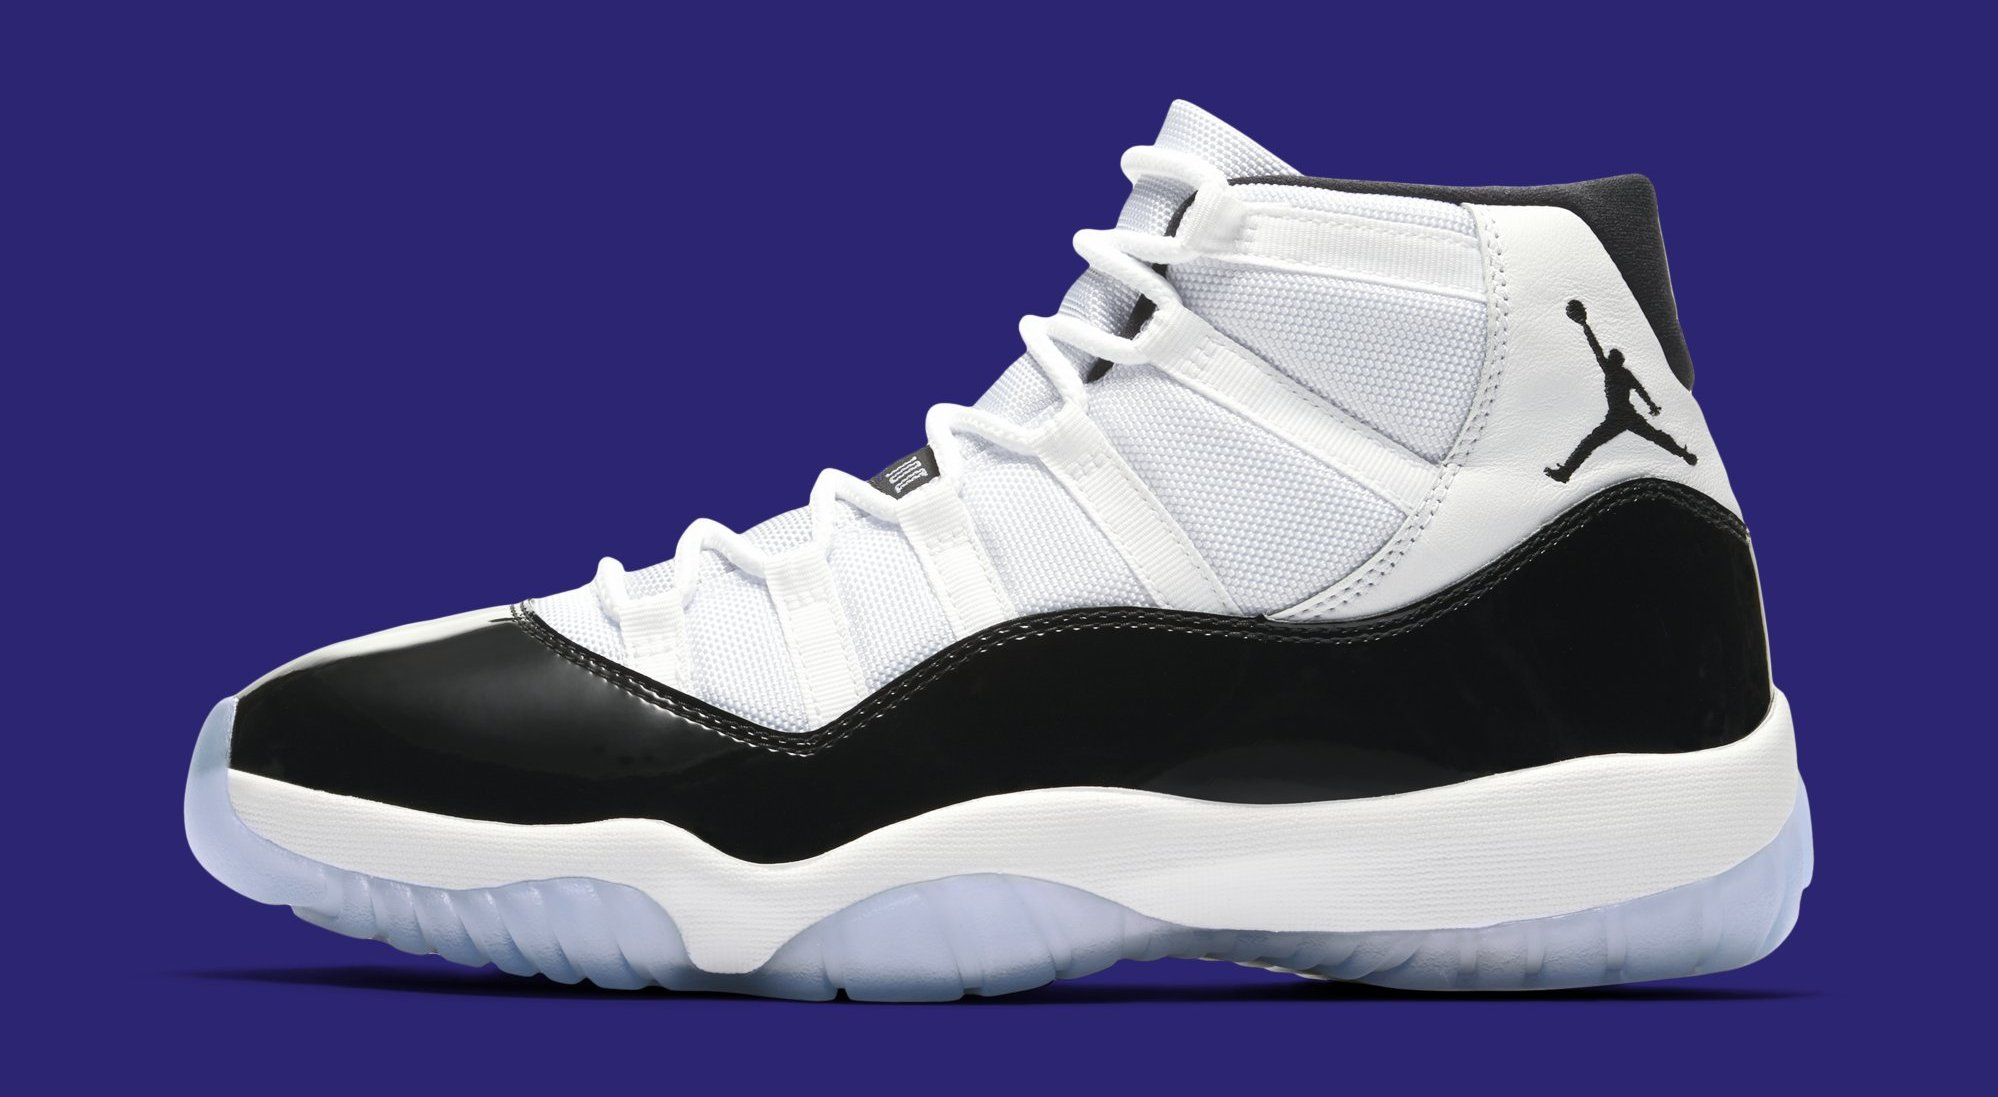 3adf98cad77 'Concord' Air Jordan 11s Will Be Easy to Get and That's a Good Thing | Sole  Collector